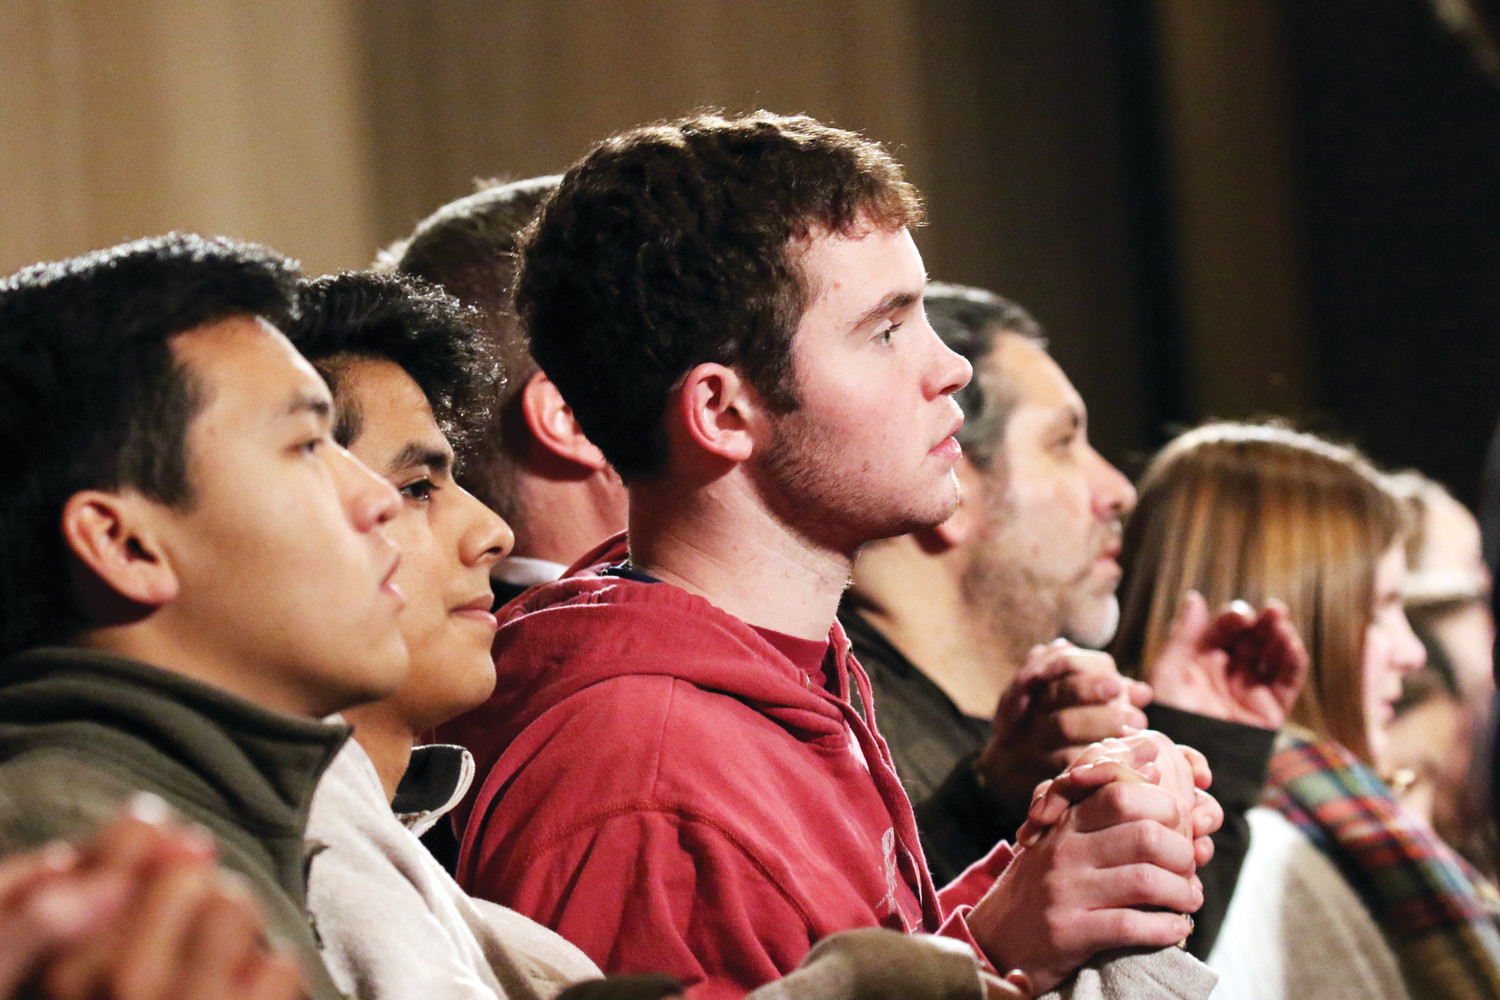 Young people join hands as they pray the Lord's Prayer during the opening Mass of the National Prayer Vigil for Life at the Basilica of the National Shrine of the Immaculate Conception in Washington, D.C., Jan. 18.